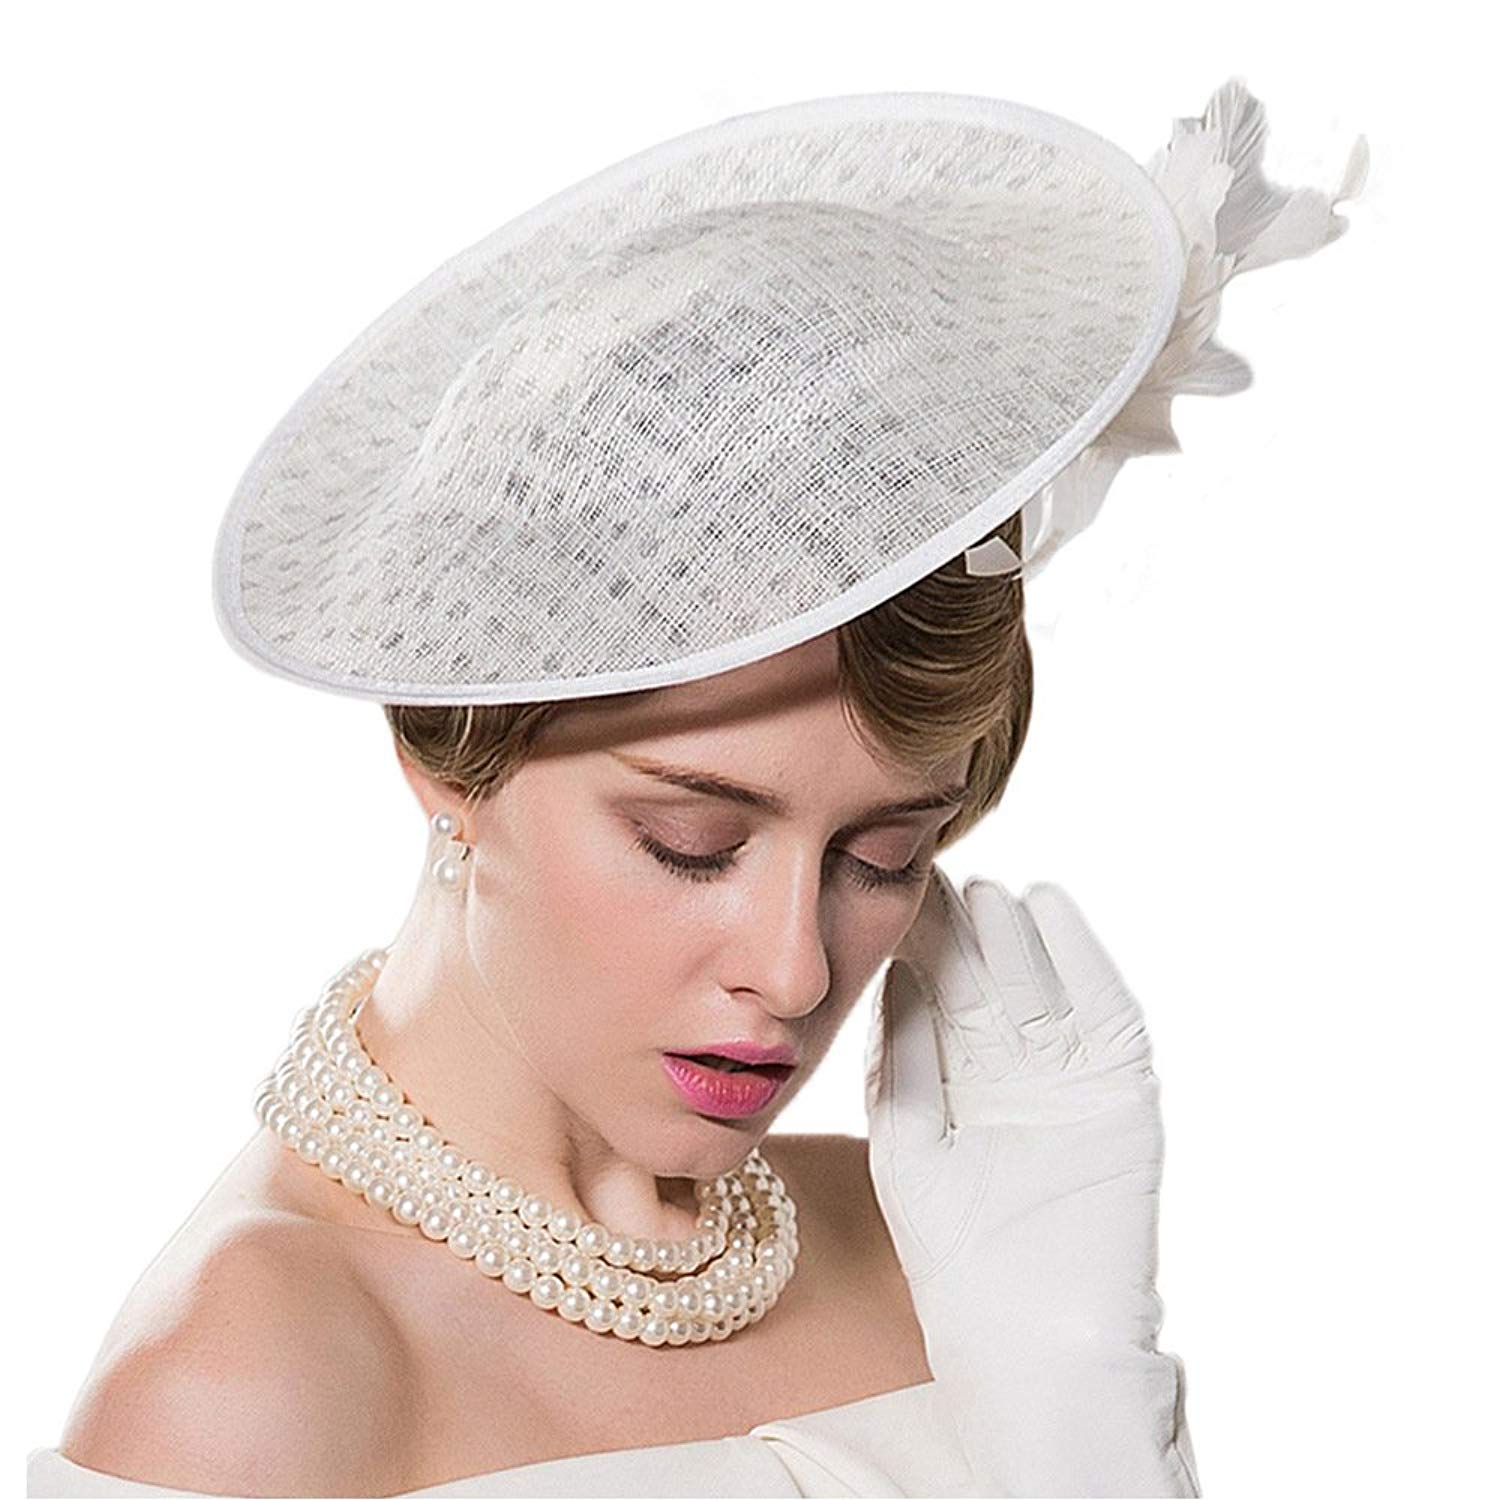 eb04dd35b7bb1 Get Quotations · Fascinators Hats for Wedding Ladies White Pillbox Hat with Veil  Vintage Church Sinamay Derby Hats